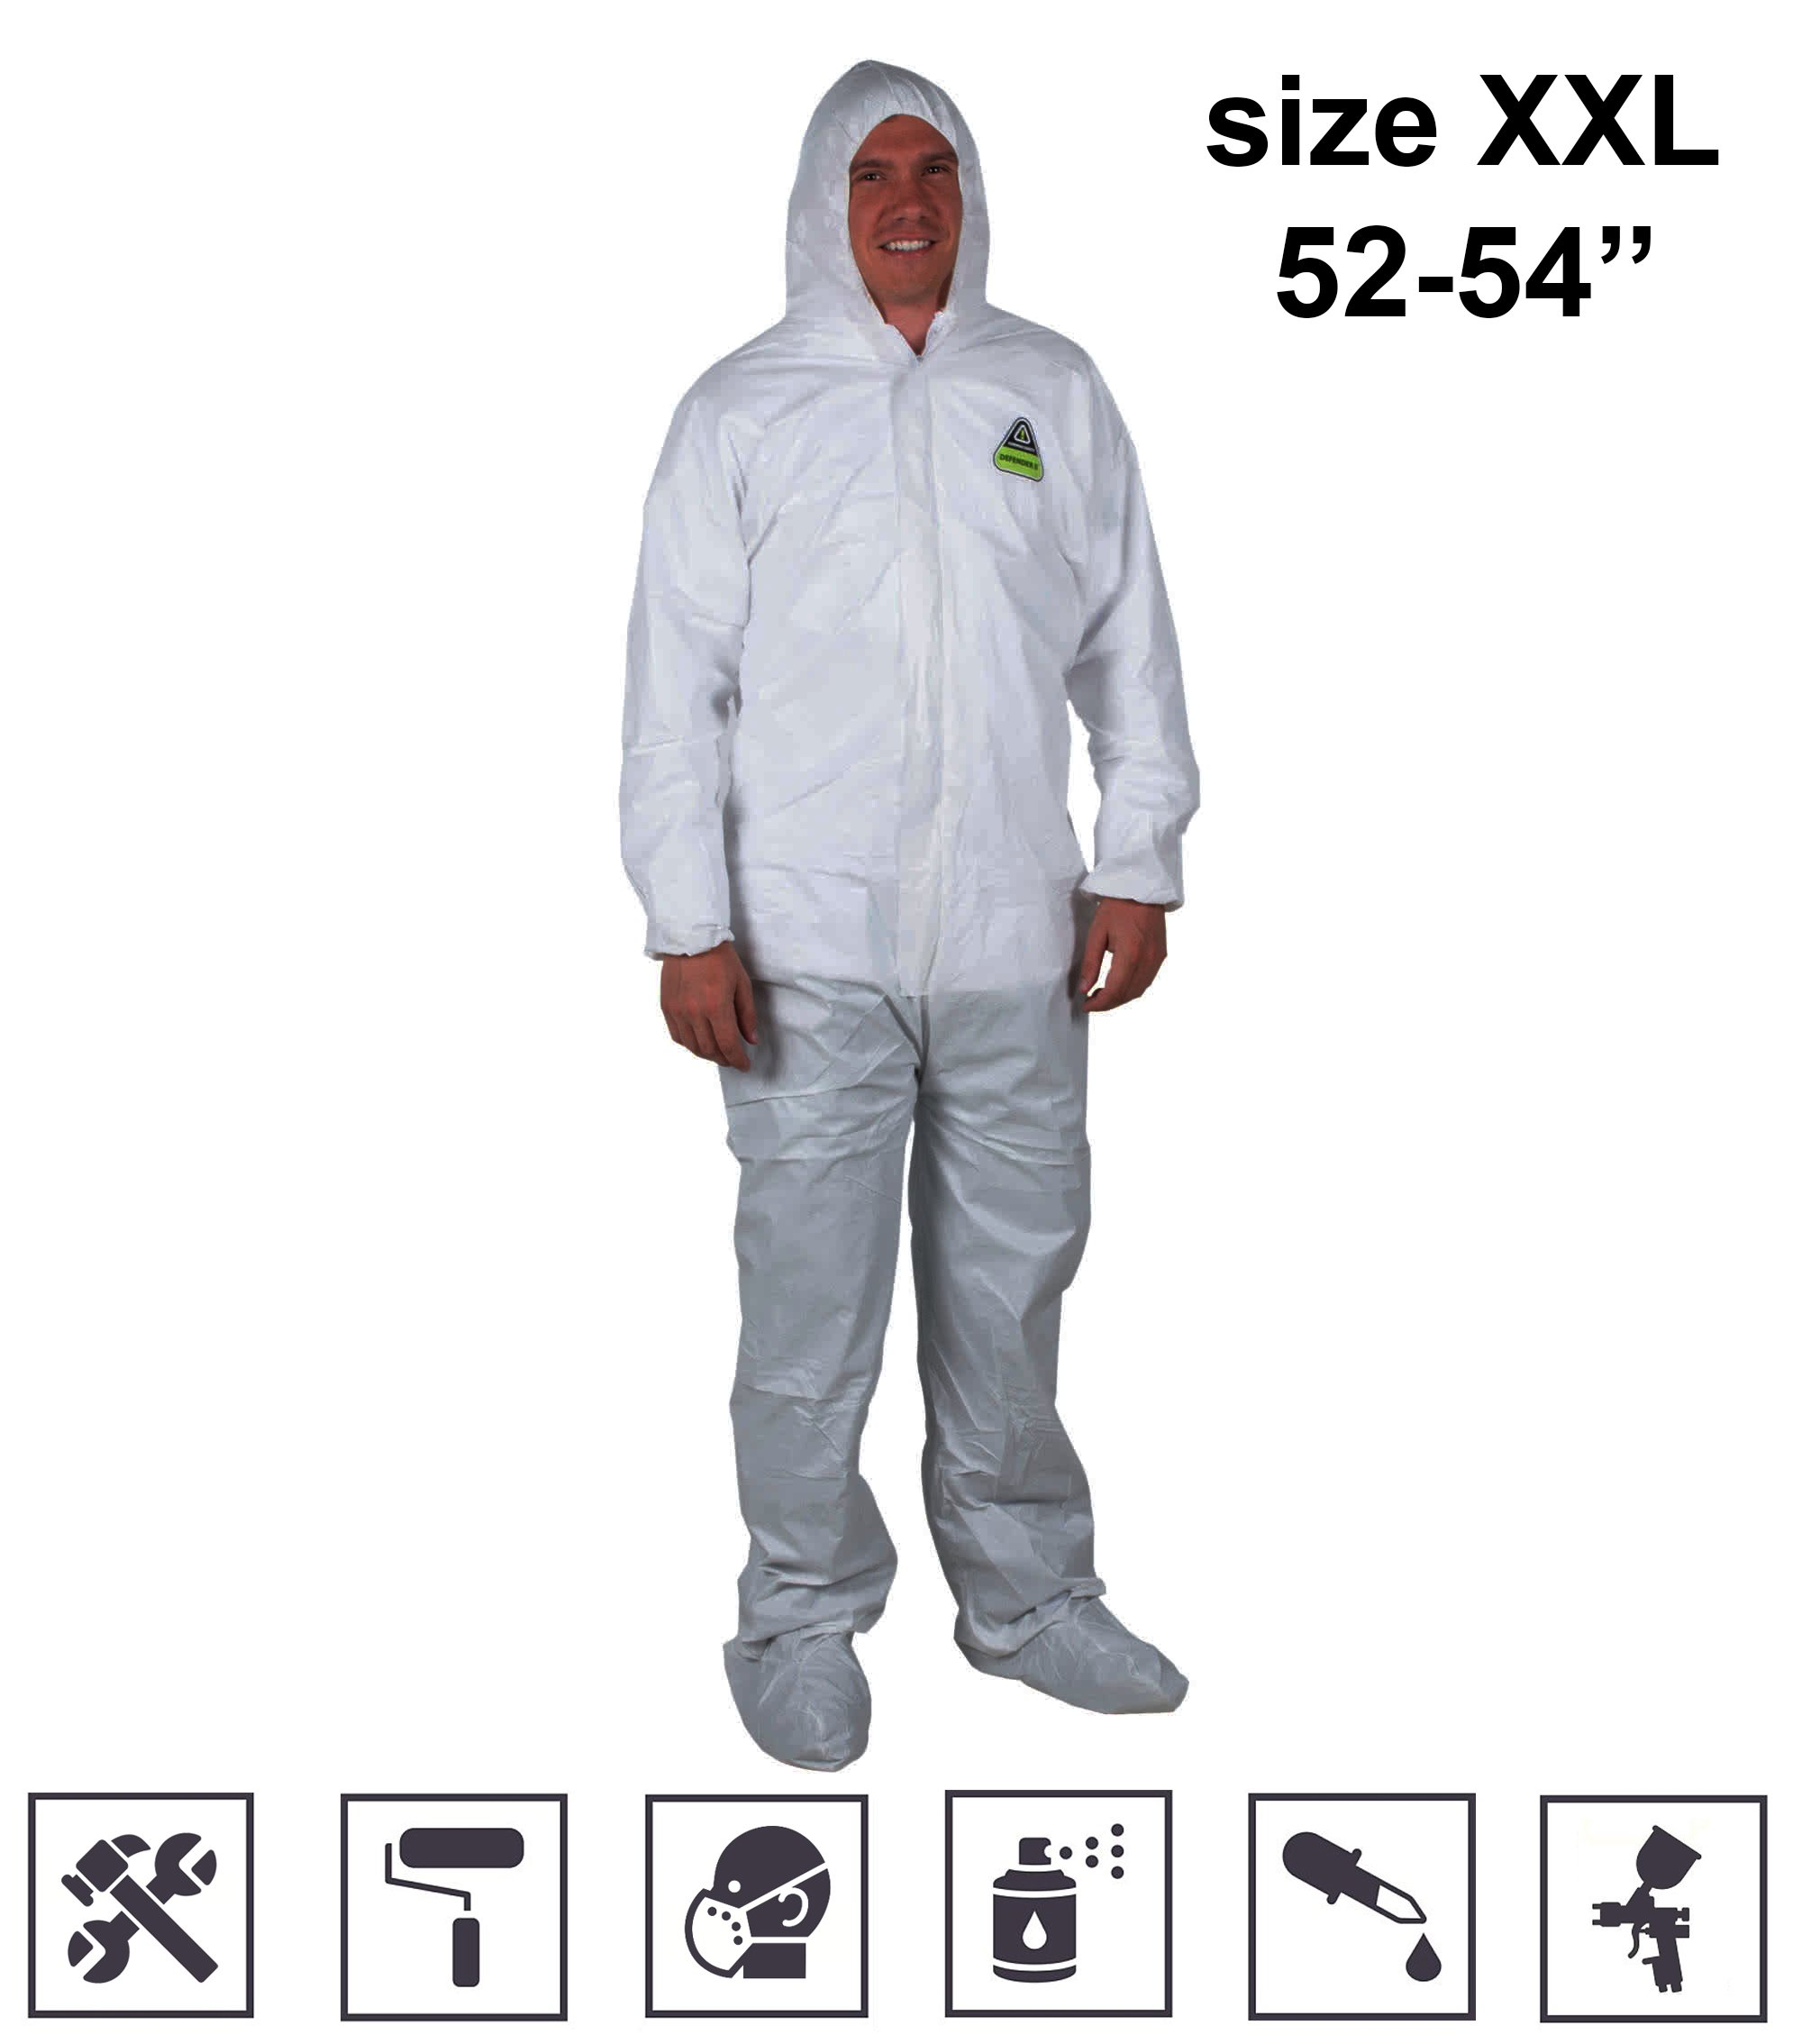 7f57b9b040d5d Get Quotations · White Disposable Full Body Coveralls For Men with Front  Zipper insulated coveralls with hood Anti-